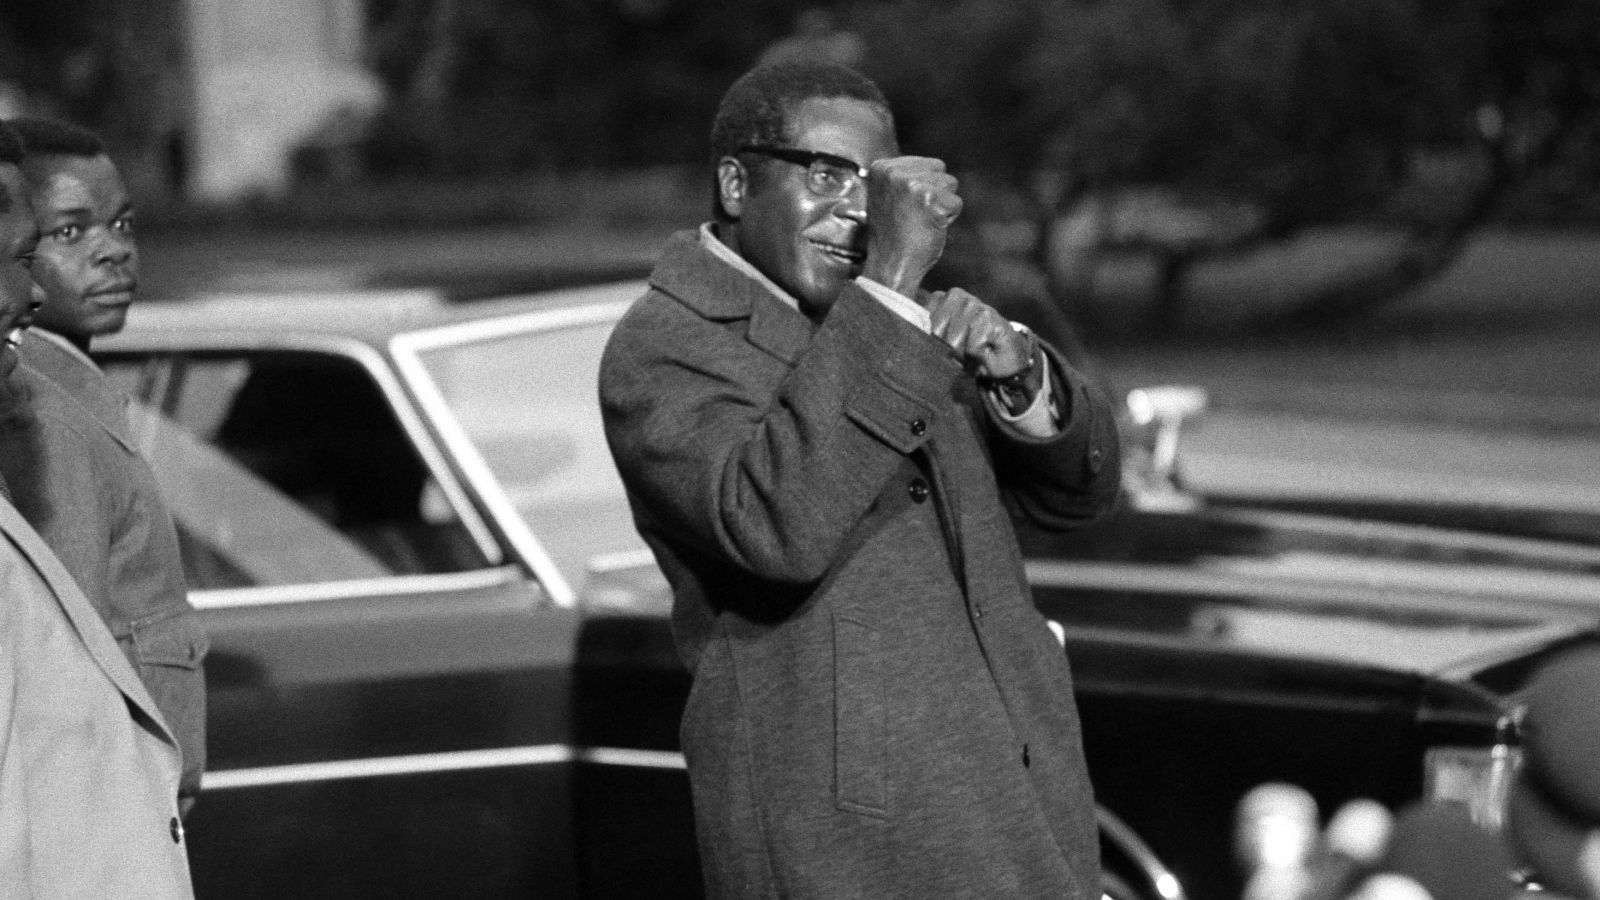 Mugabe gestures towards the media at a Geneva conference convened to address the civil war in Rhodesia. After being imprisoned for 10 years, Mugabe attended the peace talks as a leader of the guerrilla movement ZANU-PF (Zimbabwe African National Union-Patriotic Front). Rhodesia was the state that eventually became Zimbabwe.